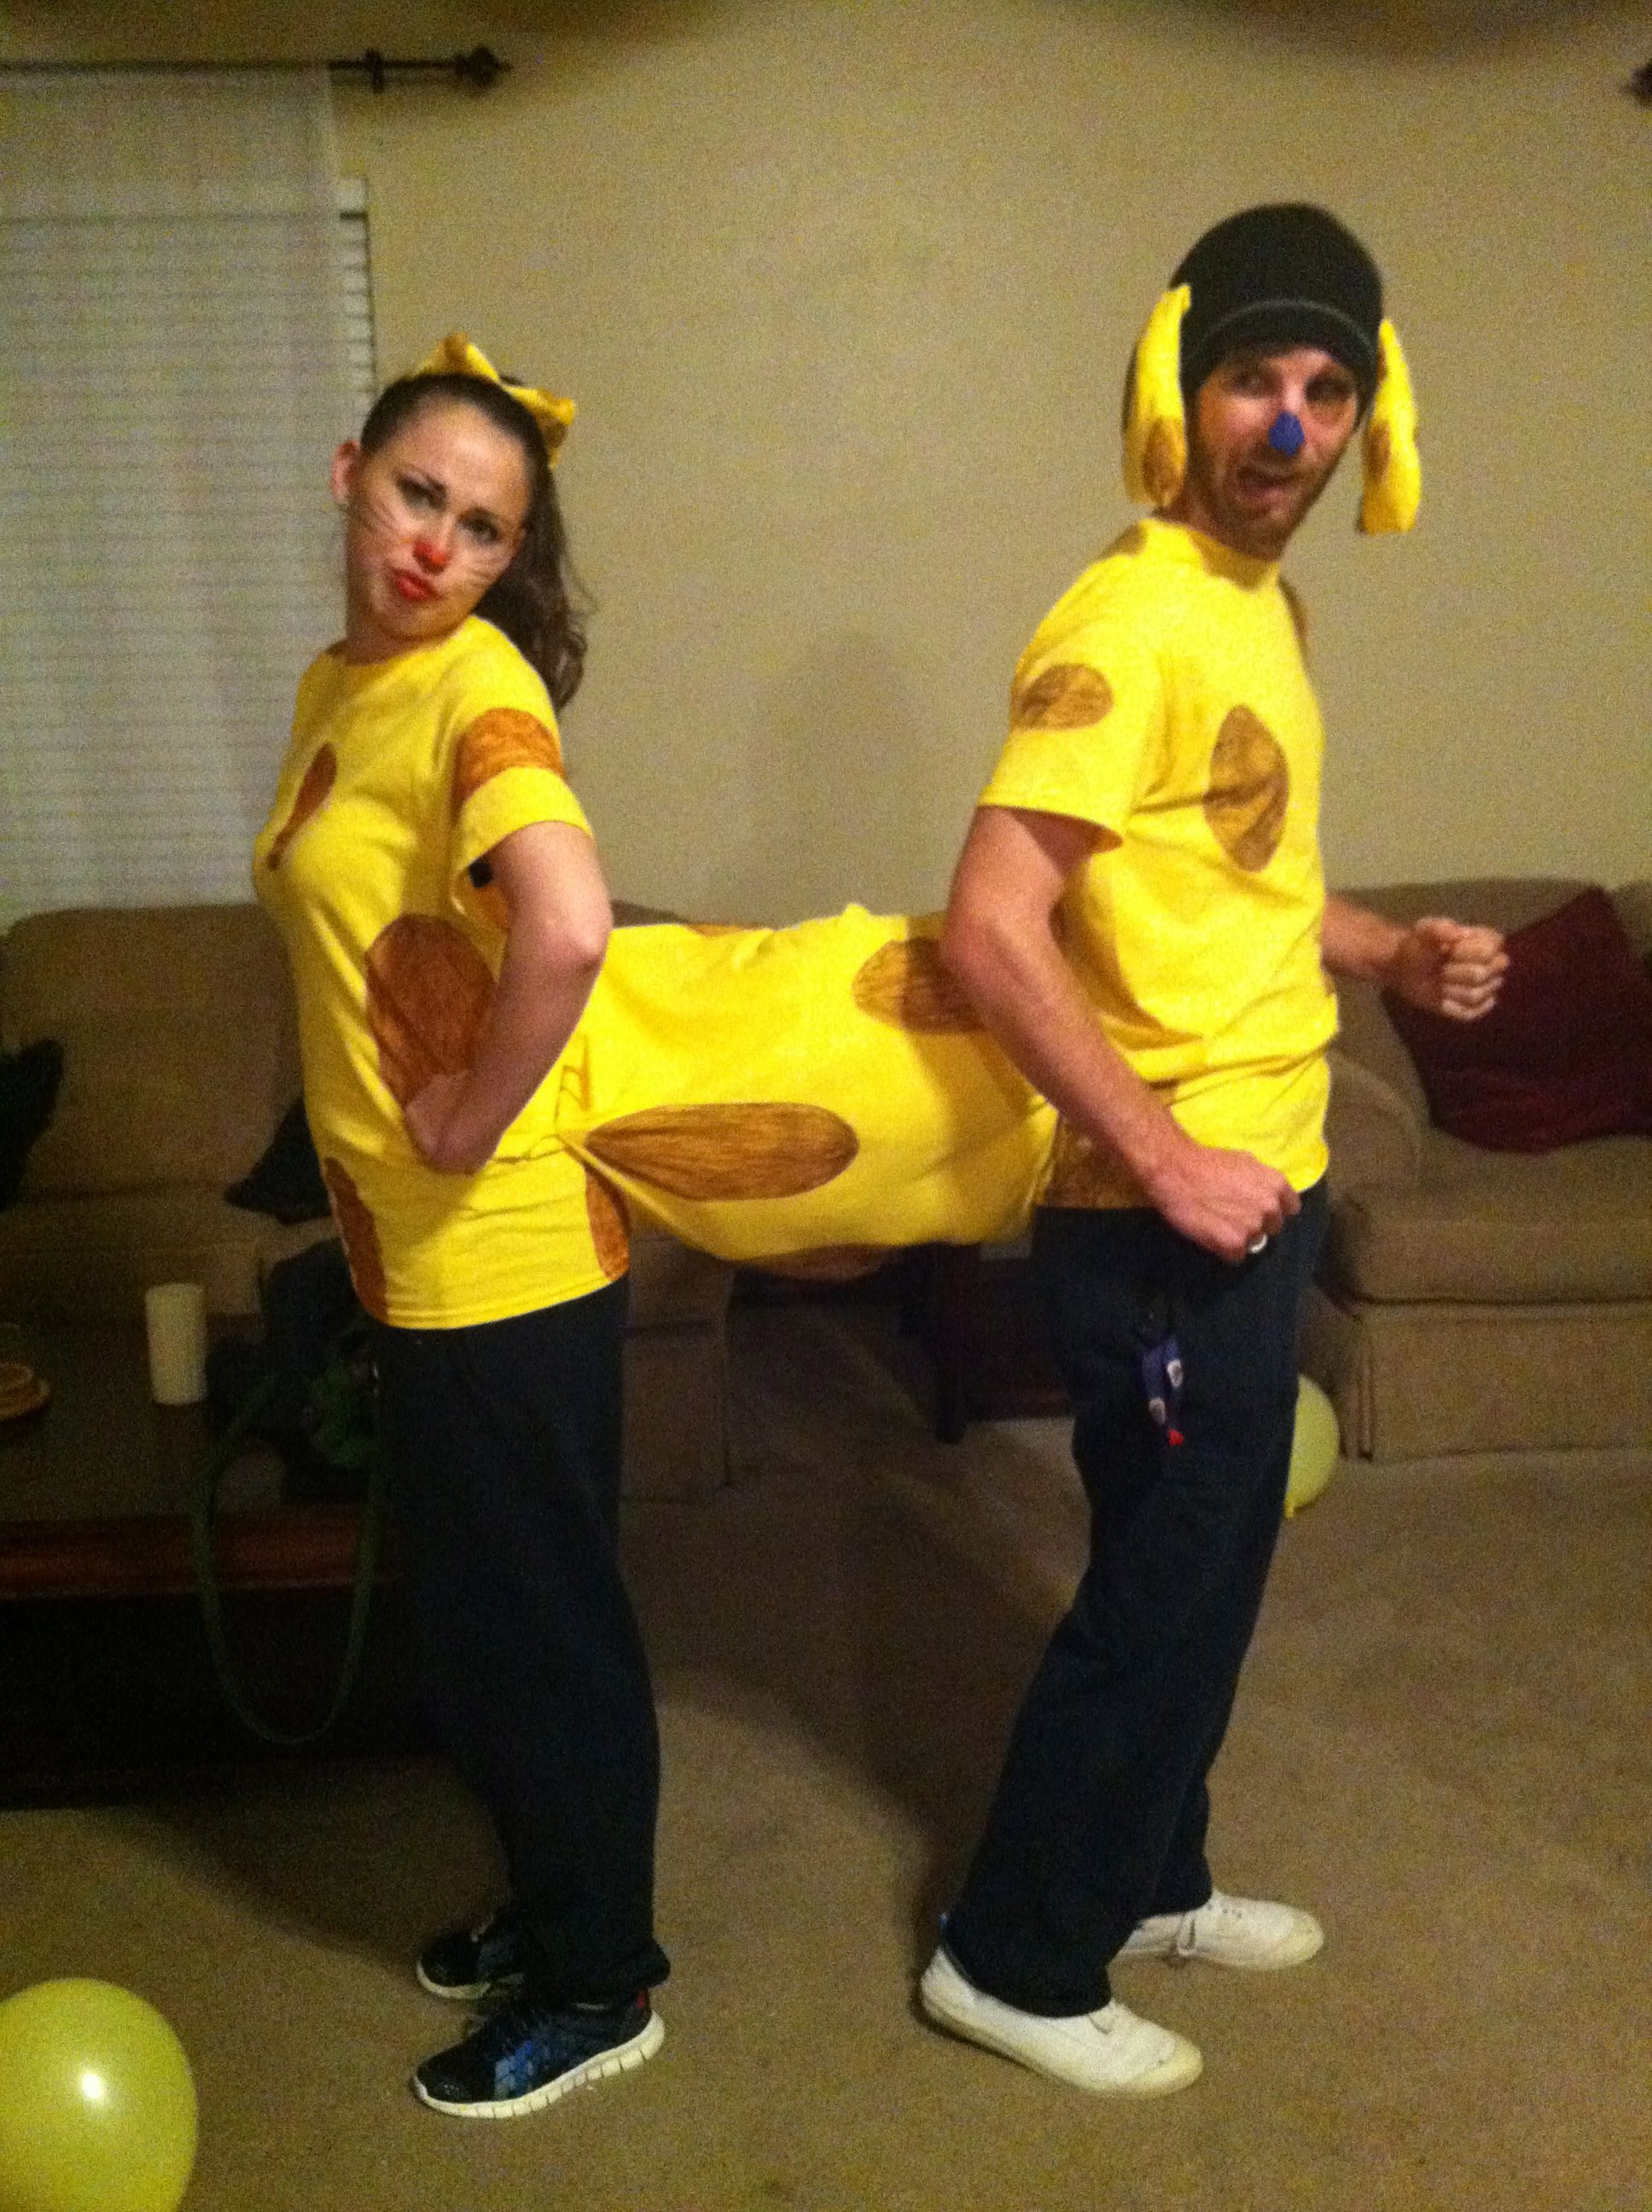 90s costume party #AboutTimeMemories | Things I love | Pinterest ...